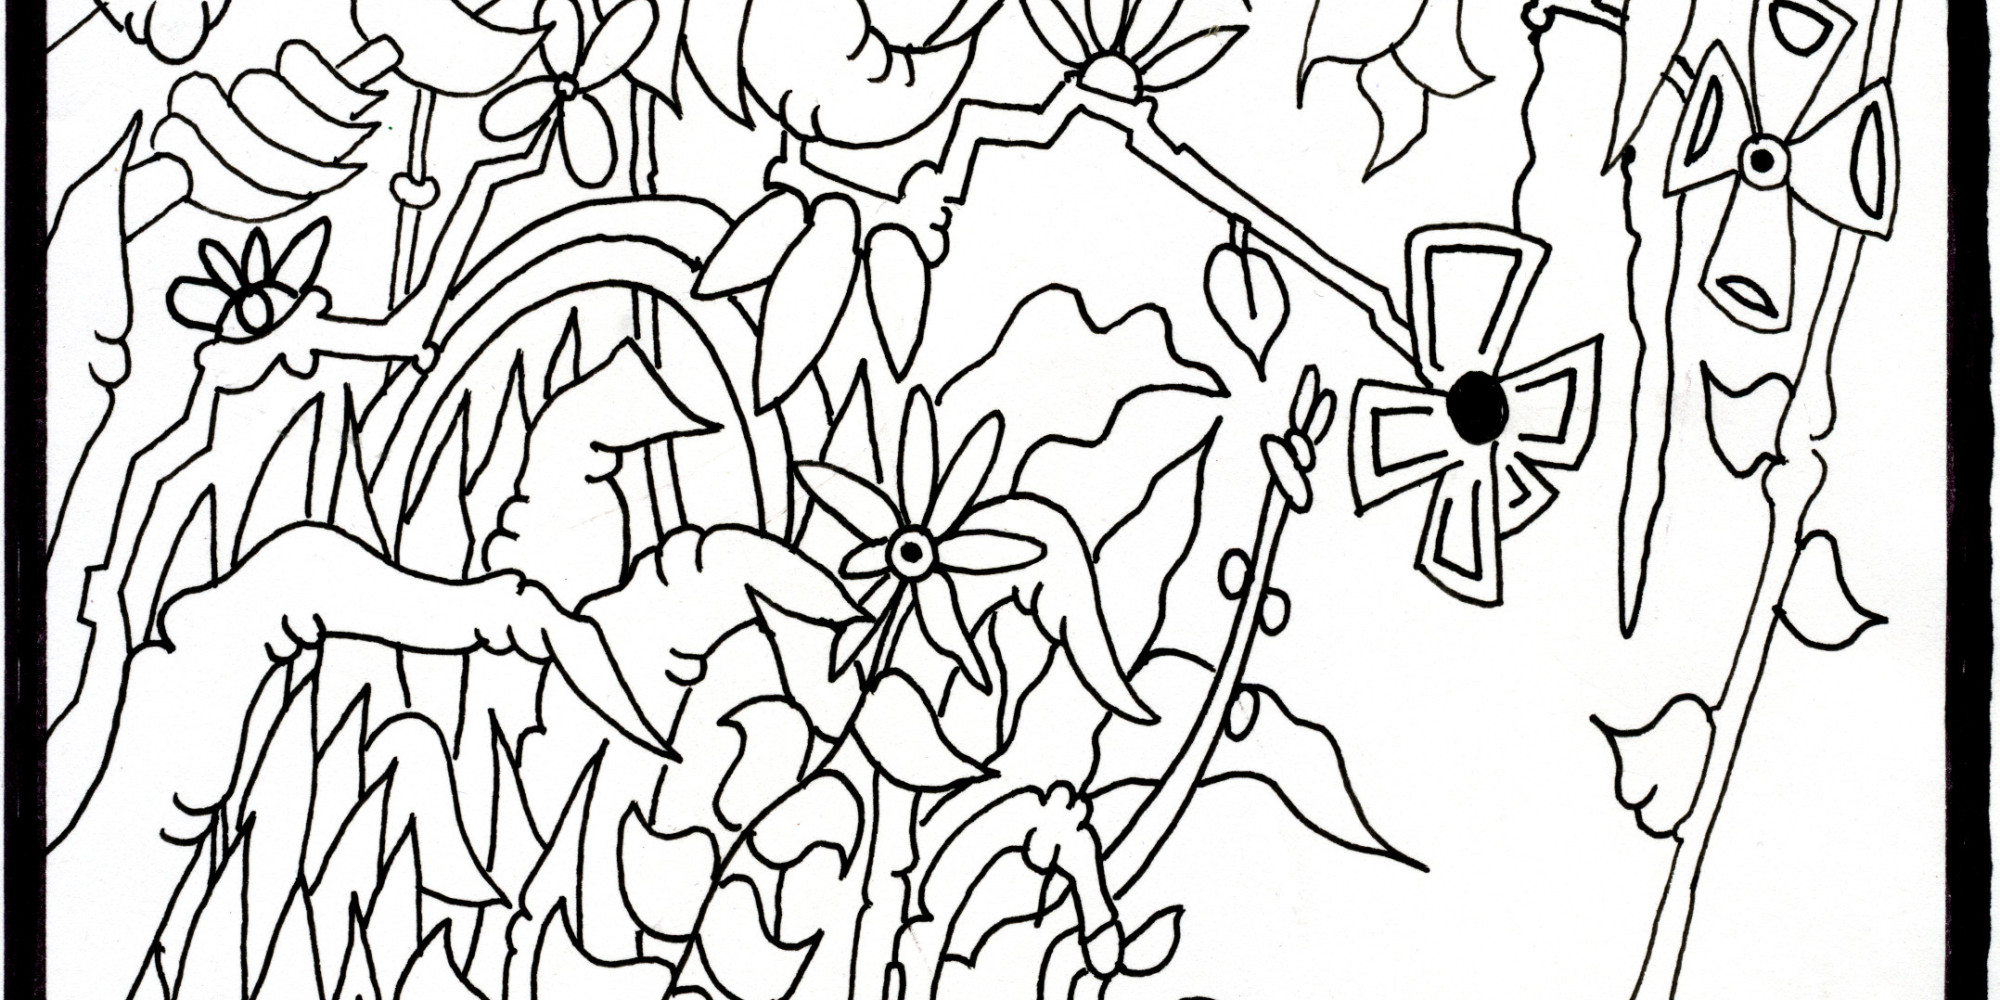 All Your Favorite Contemporary Artists, In One Coloring Book